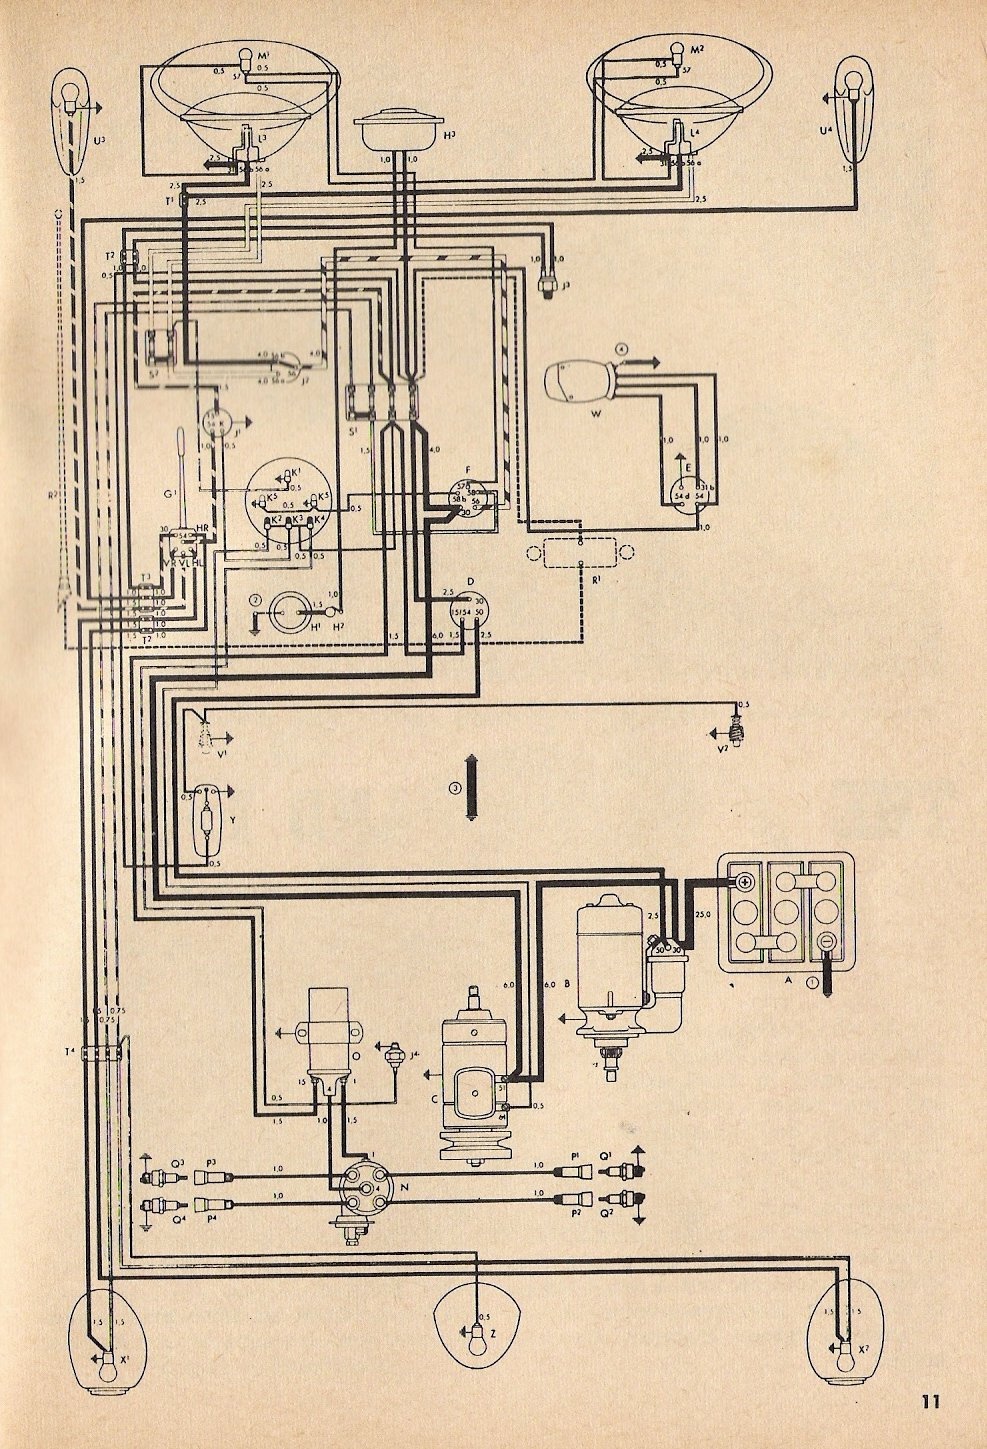 bug_toaug57 1957 beetle wiring diagram thegoldenbug com 1969 vw beetle wiring diagram at bayanpartner.co